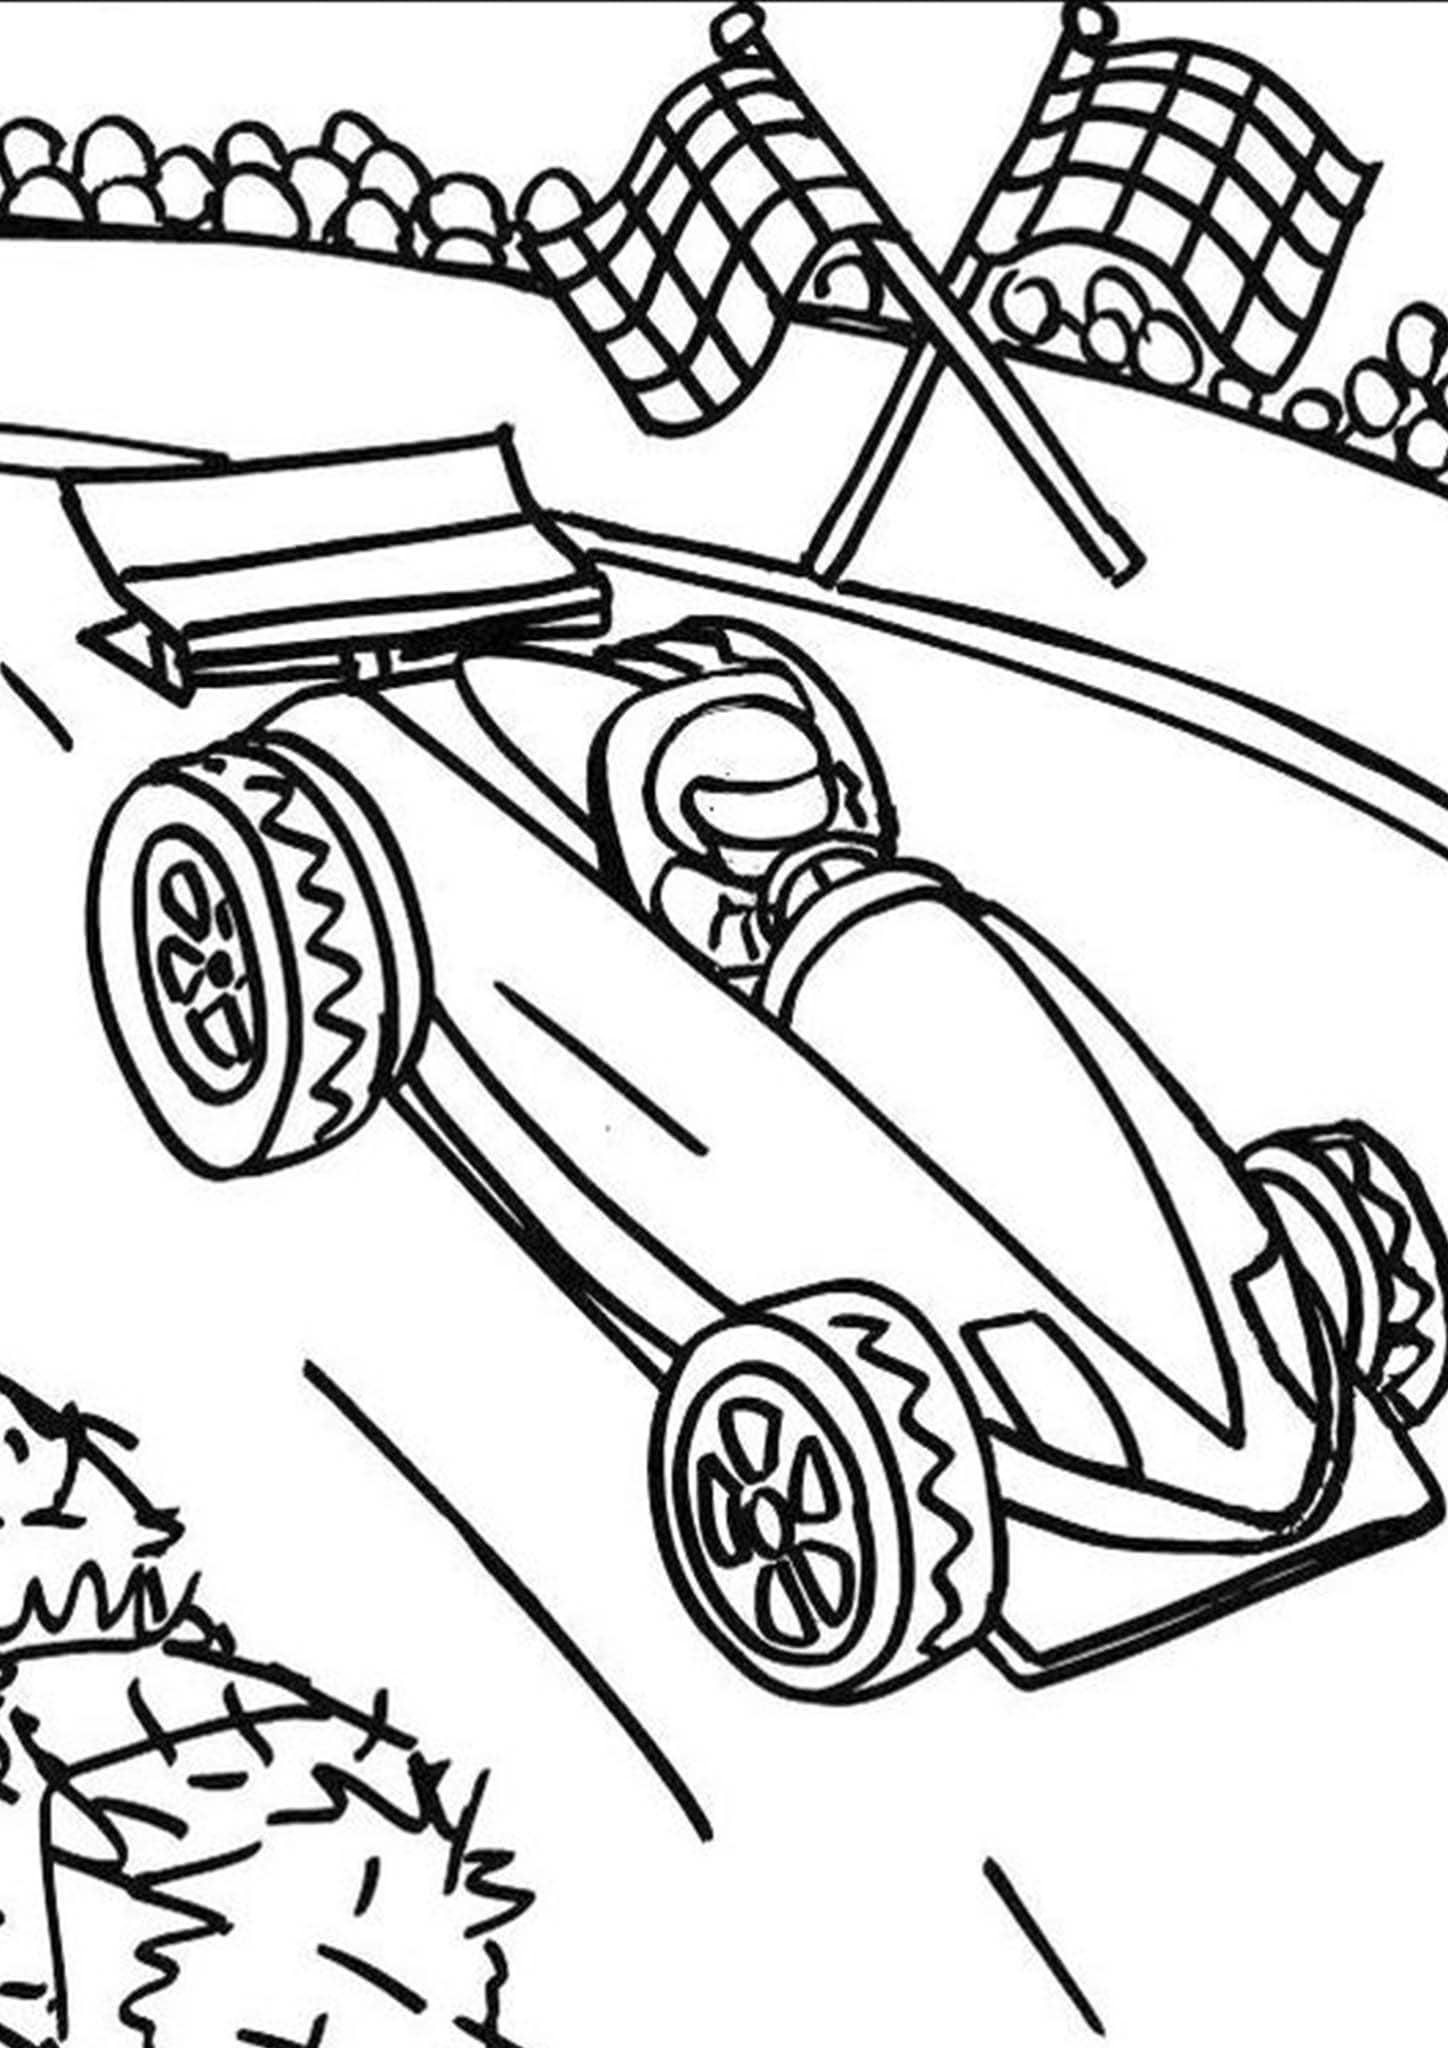 Free Easy To Print Race Car Coloring Pages Race Car Coloring Pages Cars Coloring Pages Coloring Pages